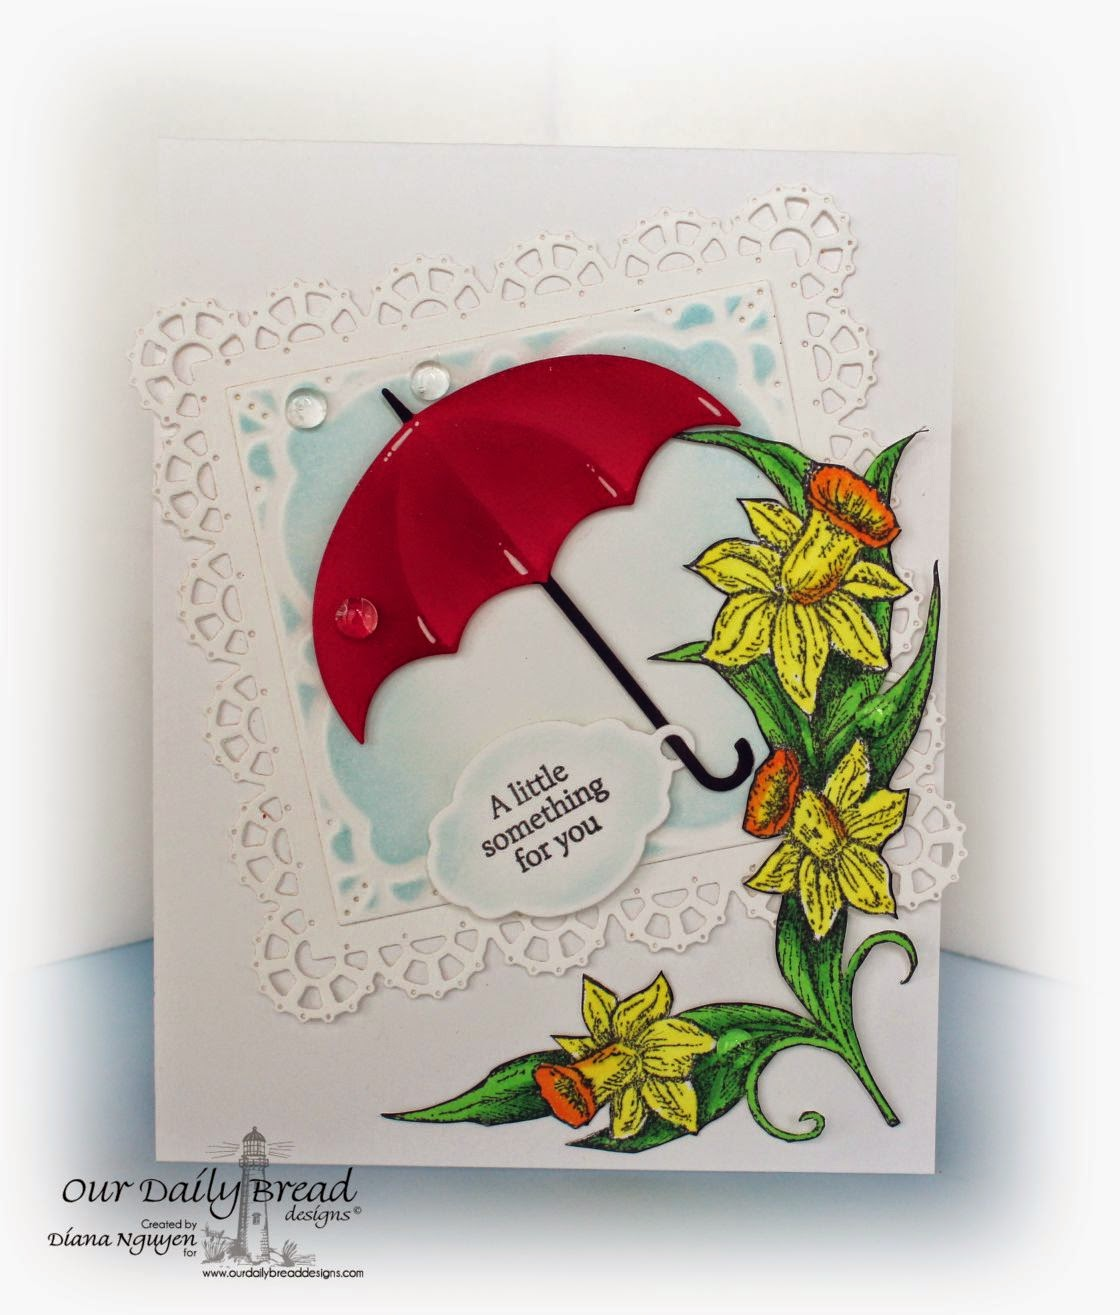 Our Daily Bread Designs, Umbrellas, Daffodil Corner, Mini Tag Sentiments, Layered Lacey Square Dies, Designed by Diana Nguyen